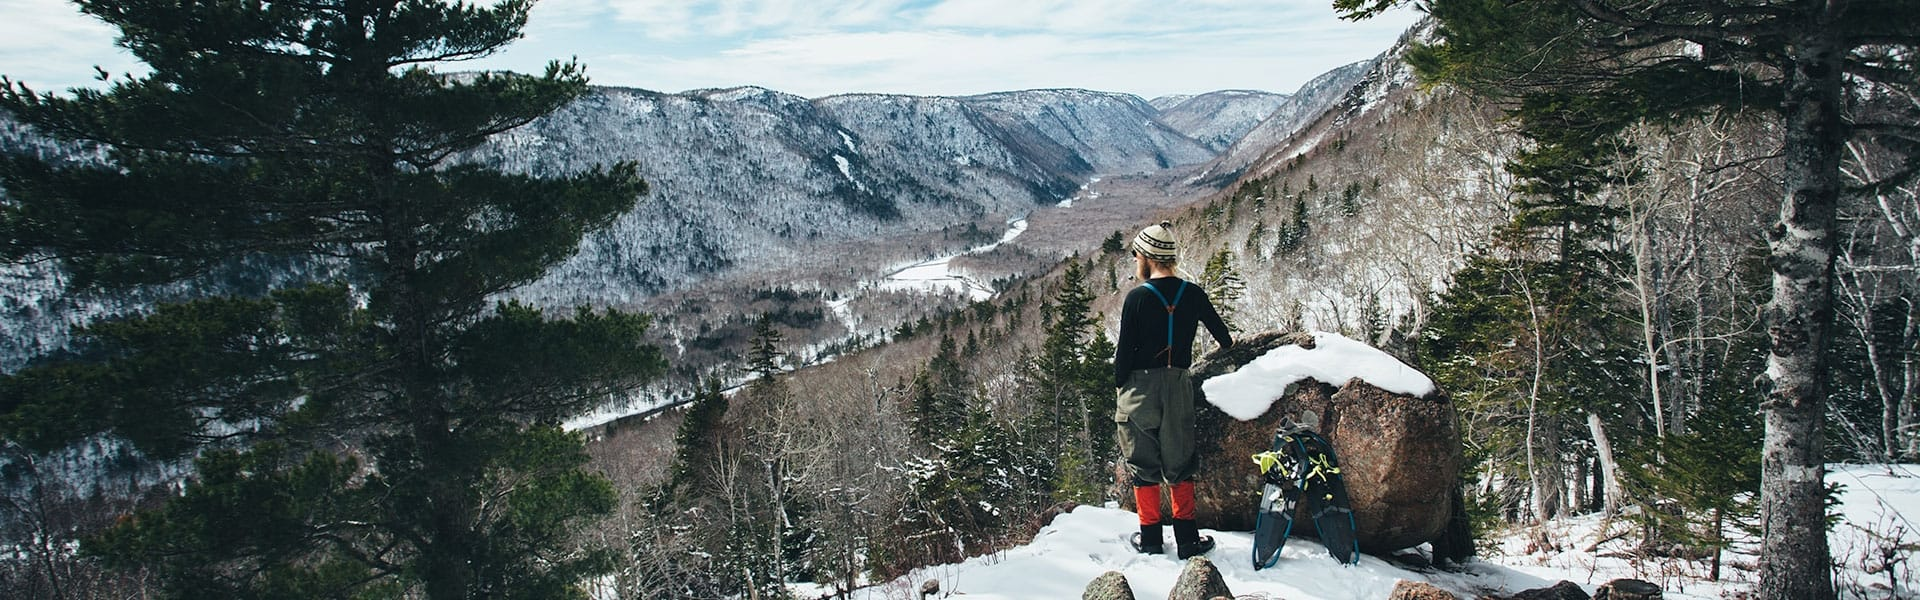 A man and his snowshoes stand next to a rock overlooking a snowy landscape